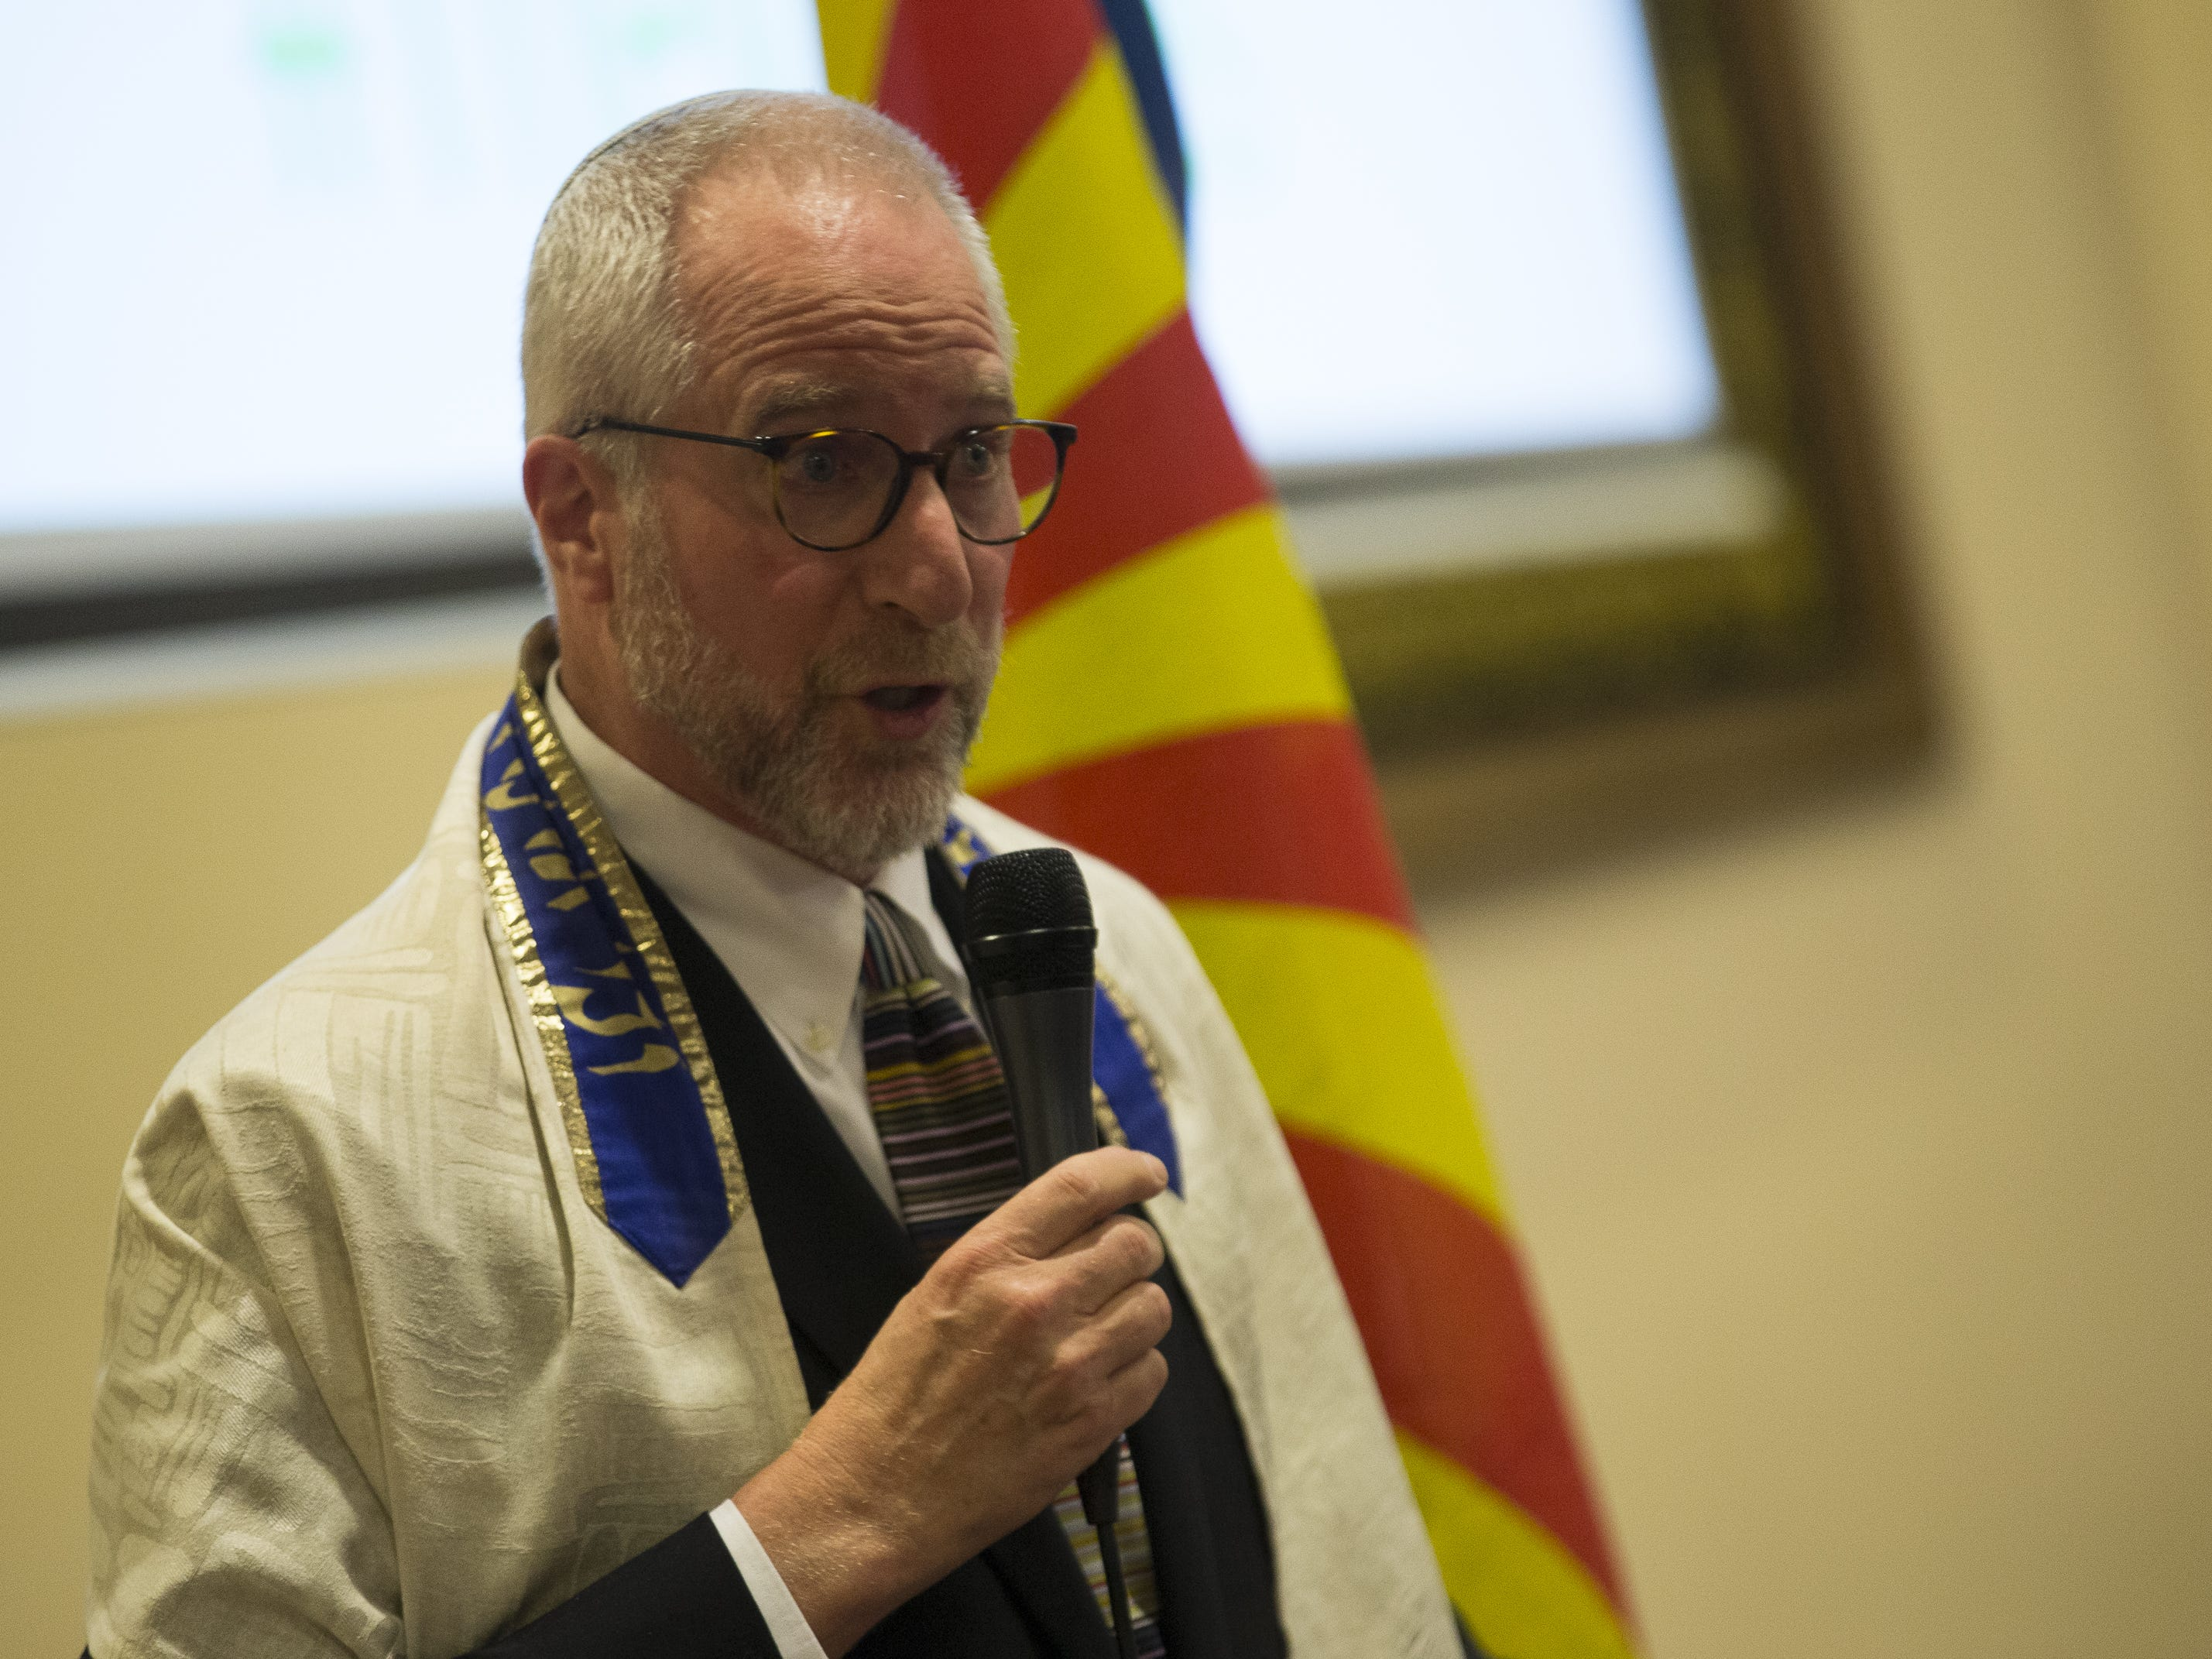 Rabbi John Linder, from Temple Solel, speaks at a vigil at the Islamic Center of Northeast Valley in Scottsdale on Sunday, March 17, 2019, in memory of the victims of the Christchurch New Zealand shooting.